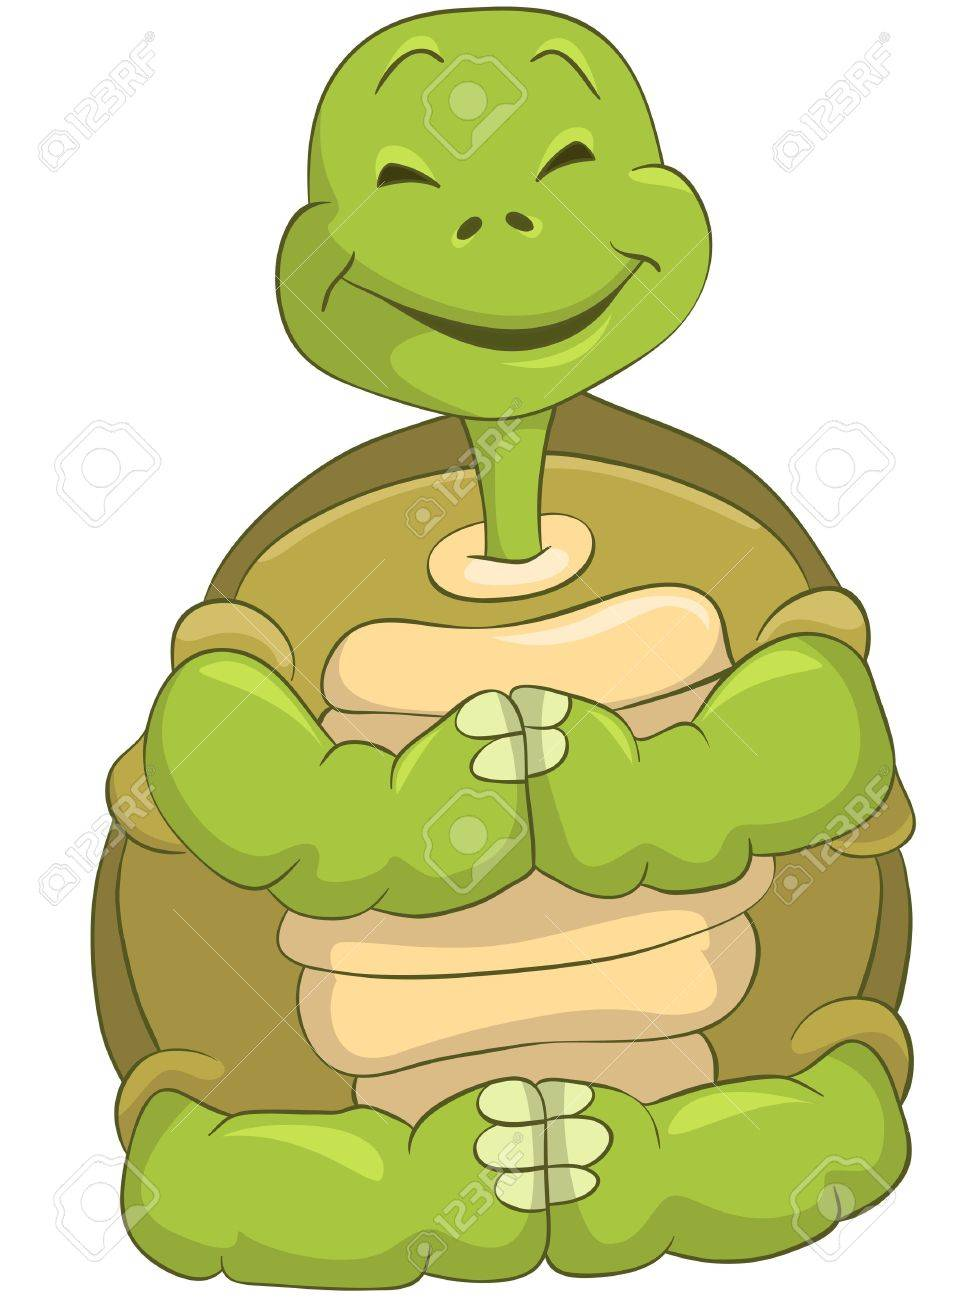 Funny Turtle Stock Vector - 13533769